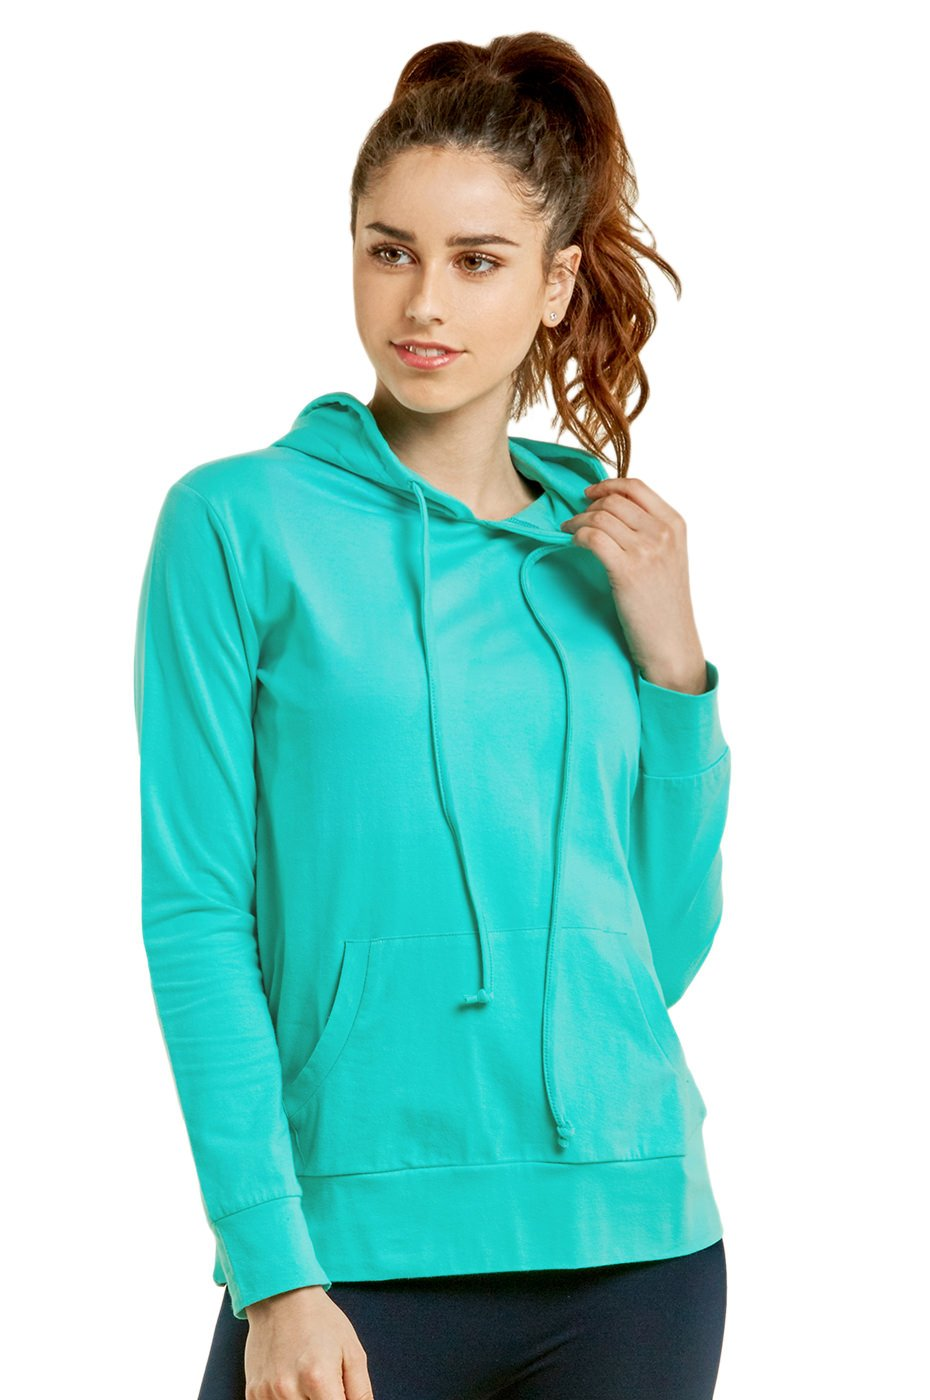 Women's Thin Cotton Pullover Hoodie Sweater (S, Mint)